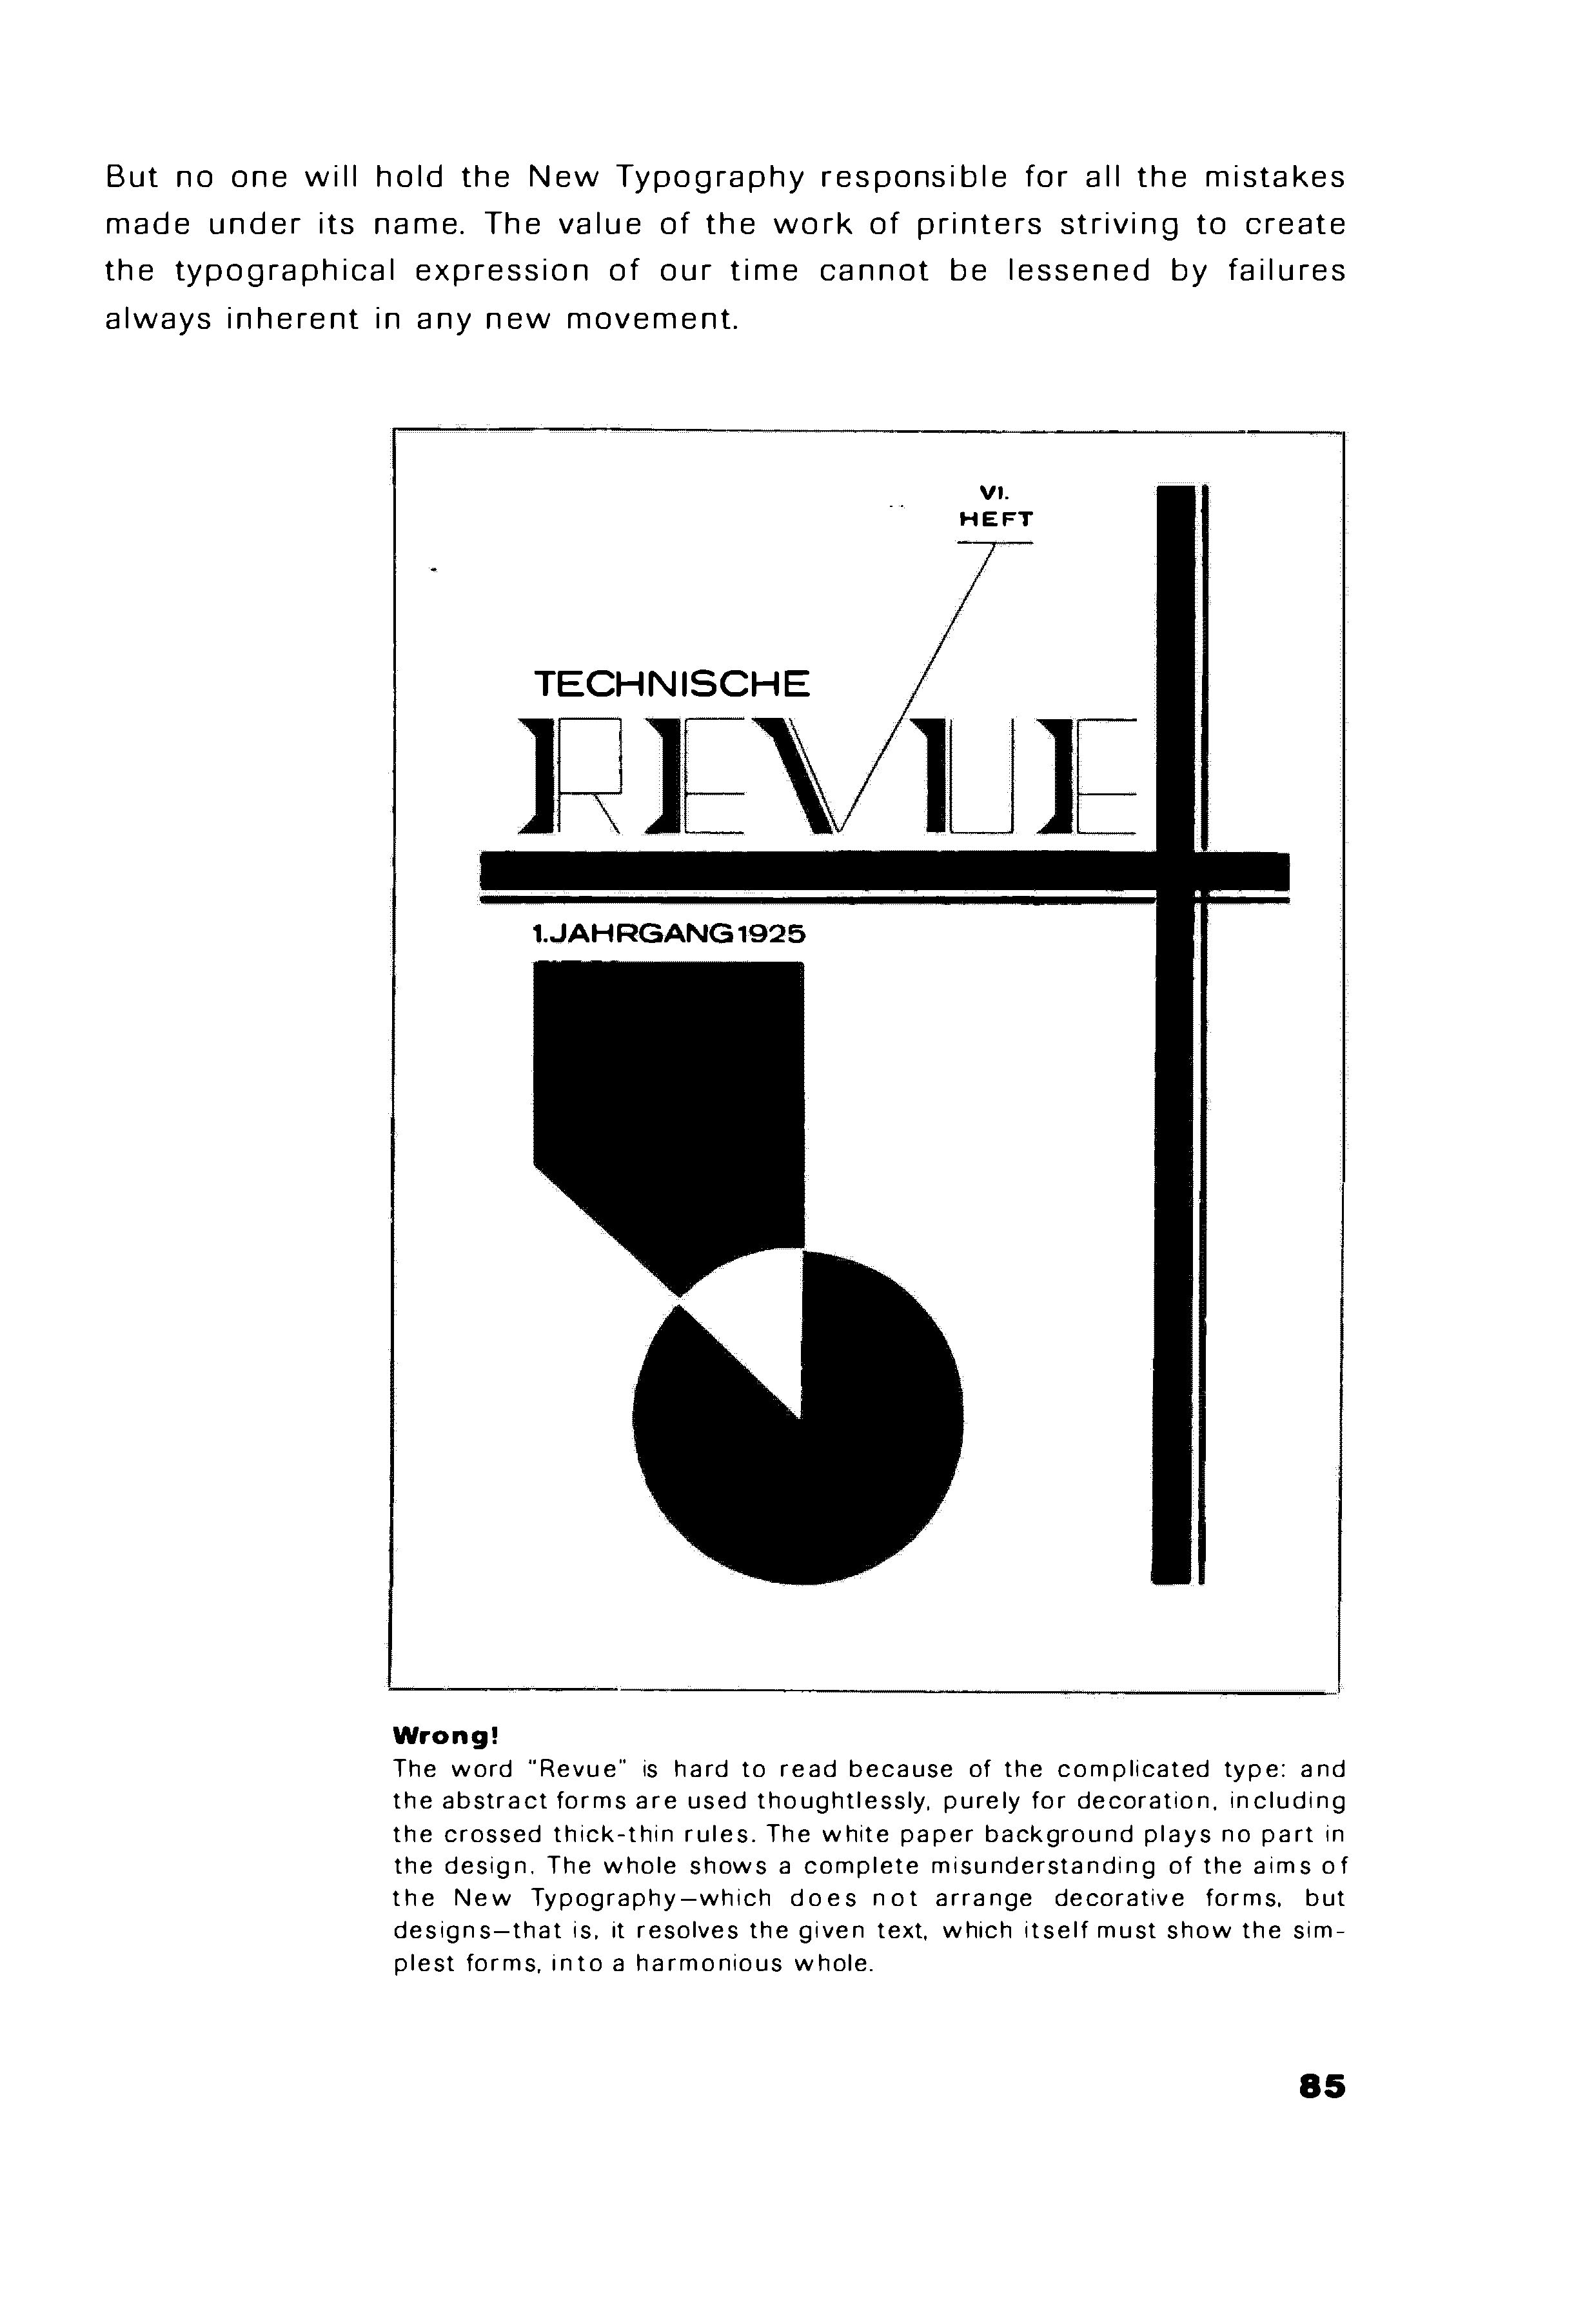 jan-tschichold-the-new-typography-1928_page_129